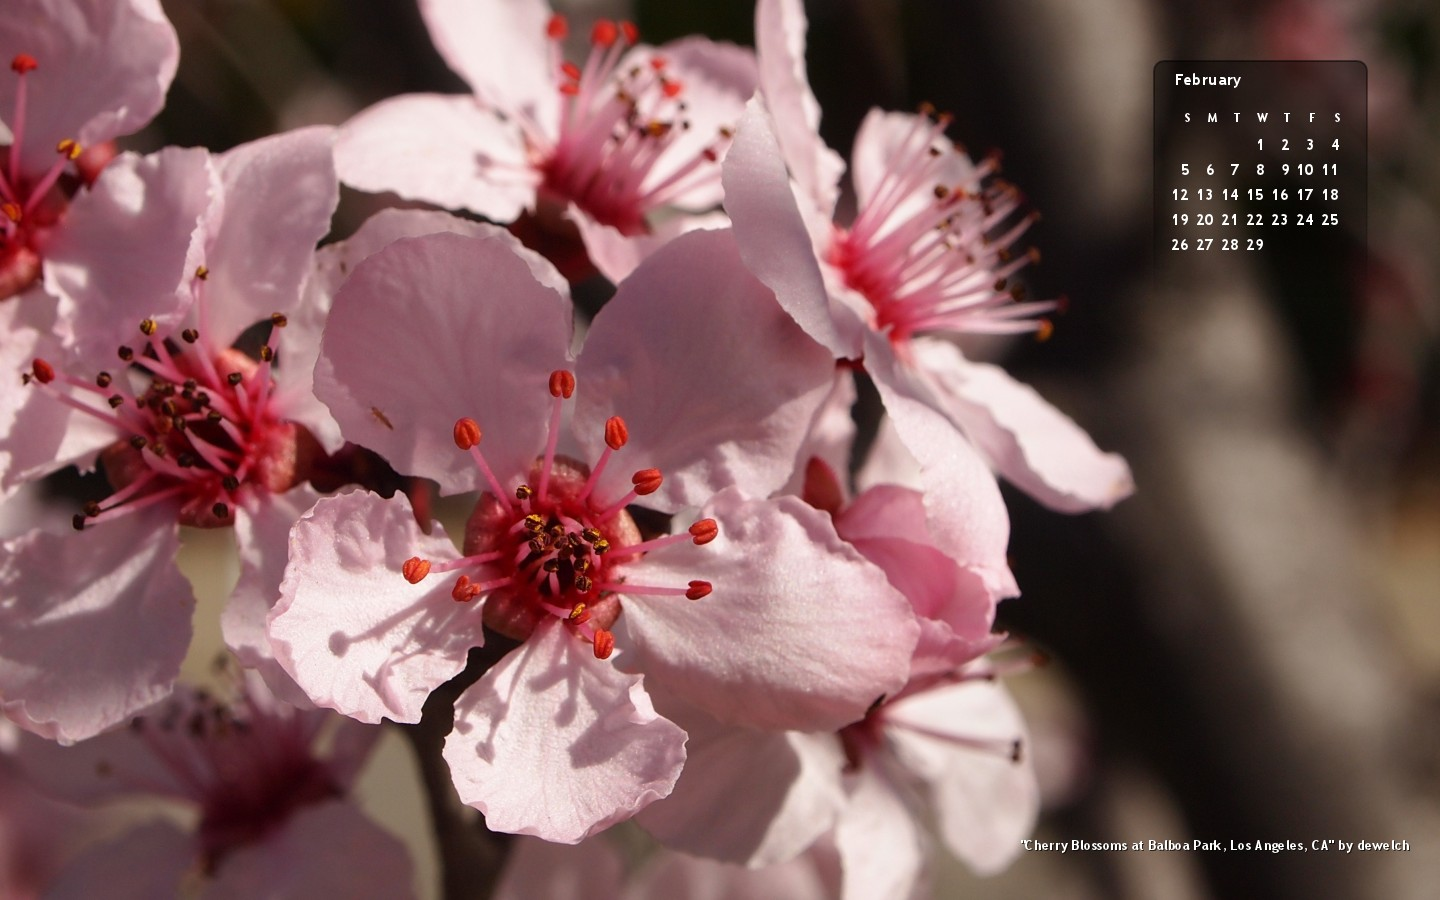 agn-feb2012-cherryblossoms.jpg